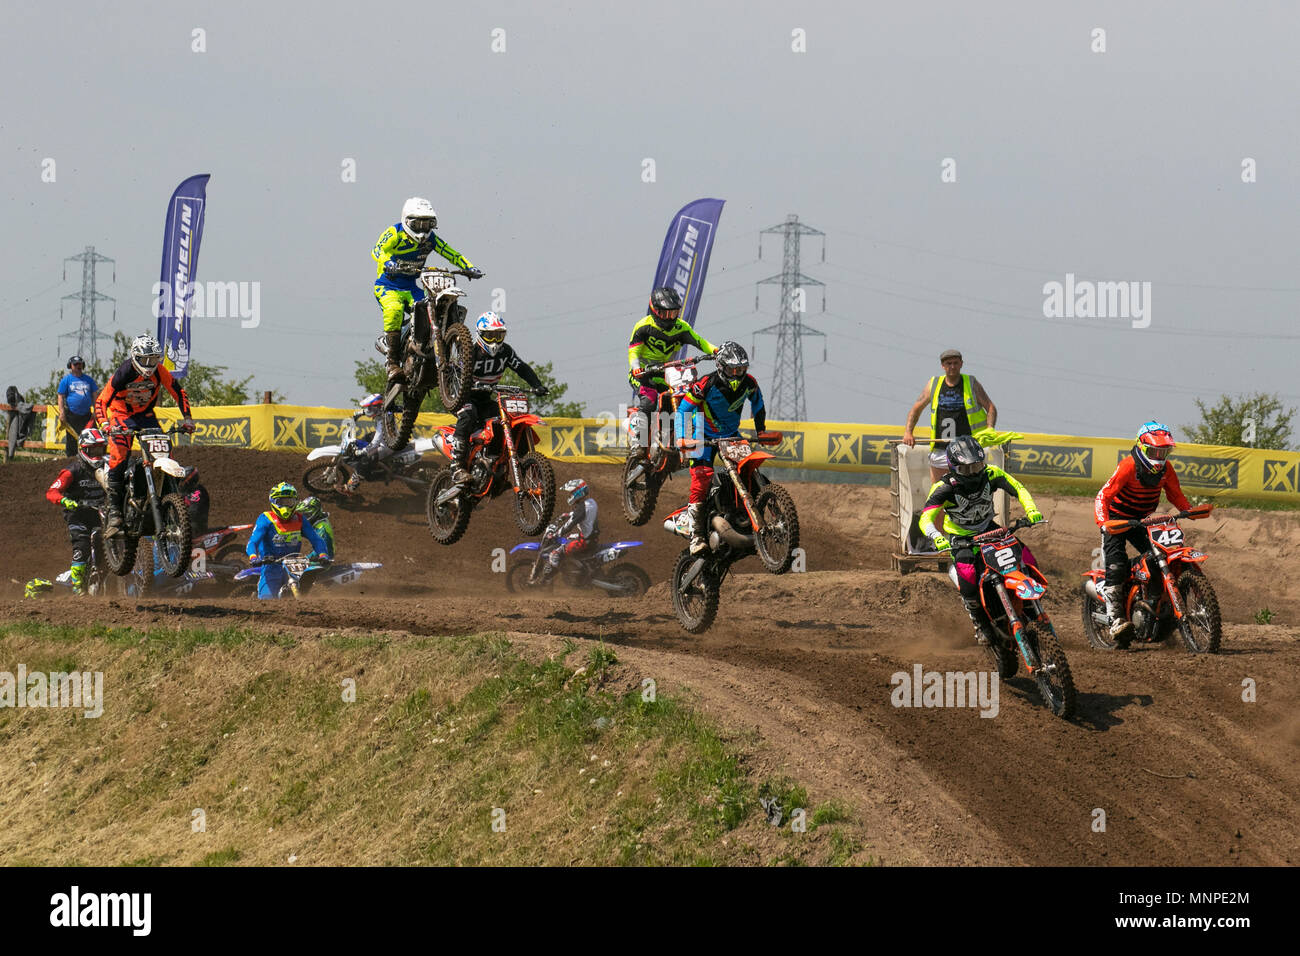 Preston, UK. 19/05/2018.  Michelin MX Nationals moto cross,  race, sport, motorcycle, racing, motorycles, scrambler bikes, speed, bike, competition, motor, extreme, motorbike, rider, transportation, power, cycle, jump, riding, danger, racer,  outdoor, fast, motorsport, biker, fun, offroad, transport, dangerous, event in dockland. Motocross by RHL Activities Ltd at Preston Docks British Championships.   Credit: MediaWorldImages/AlamyLiveNews - Stock Image